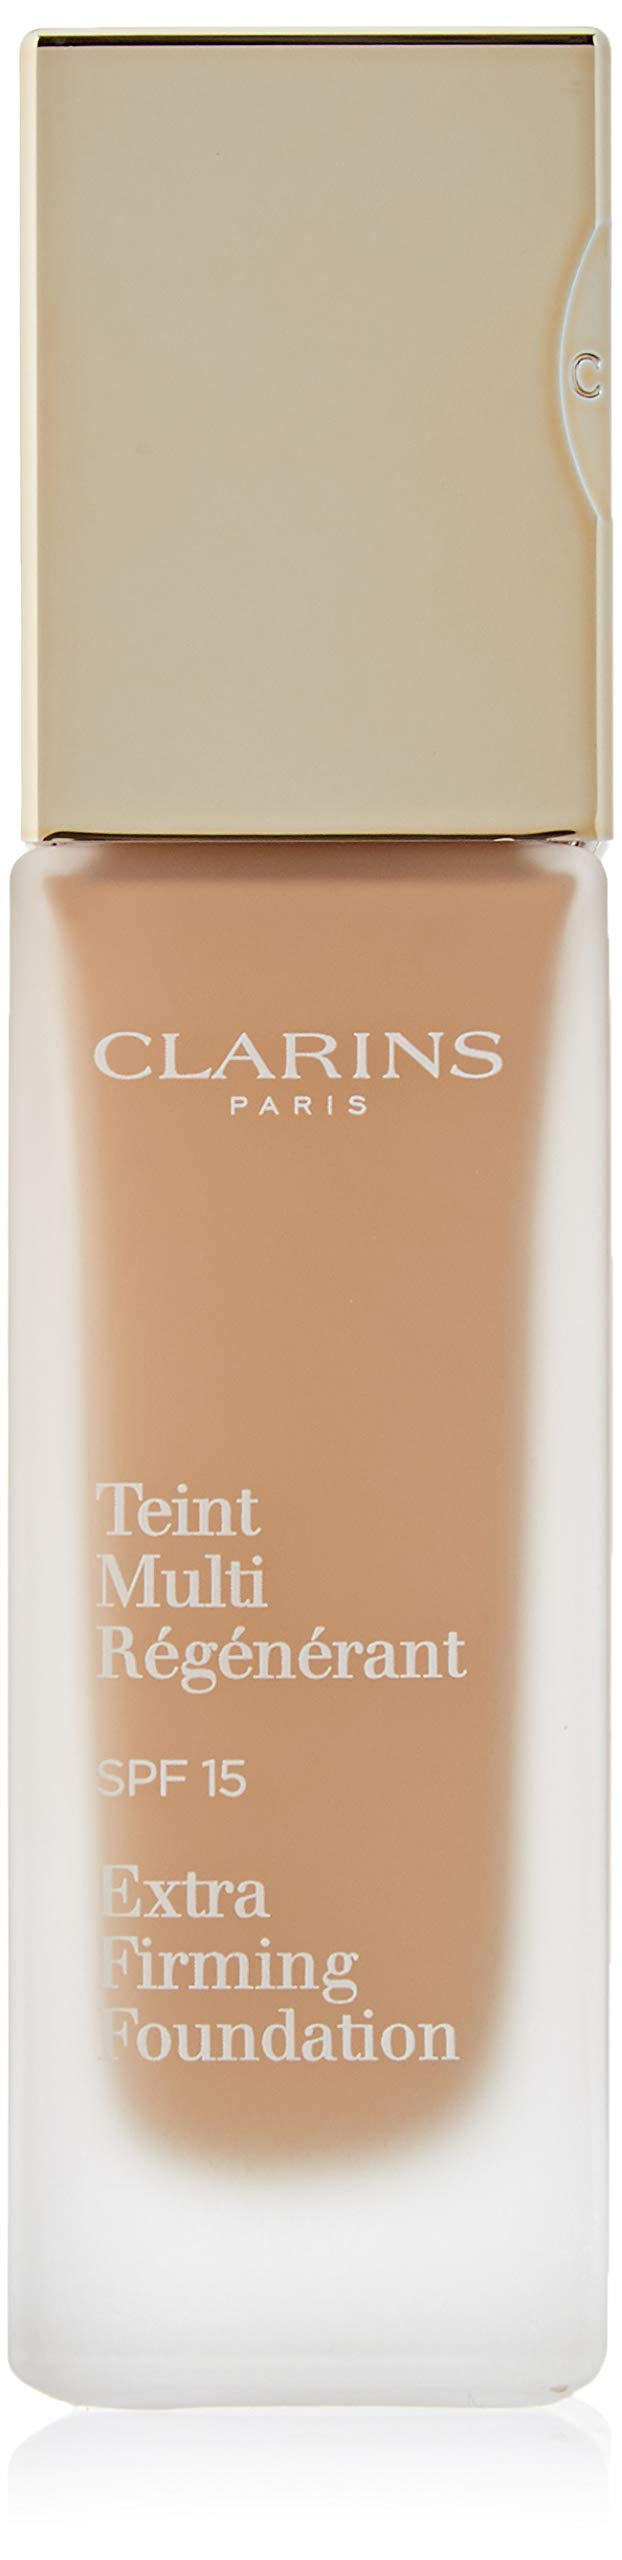 Clarins Extra Firming Foundation with SPF 15, 112 Amber, 1.1 Ounce by Clarins